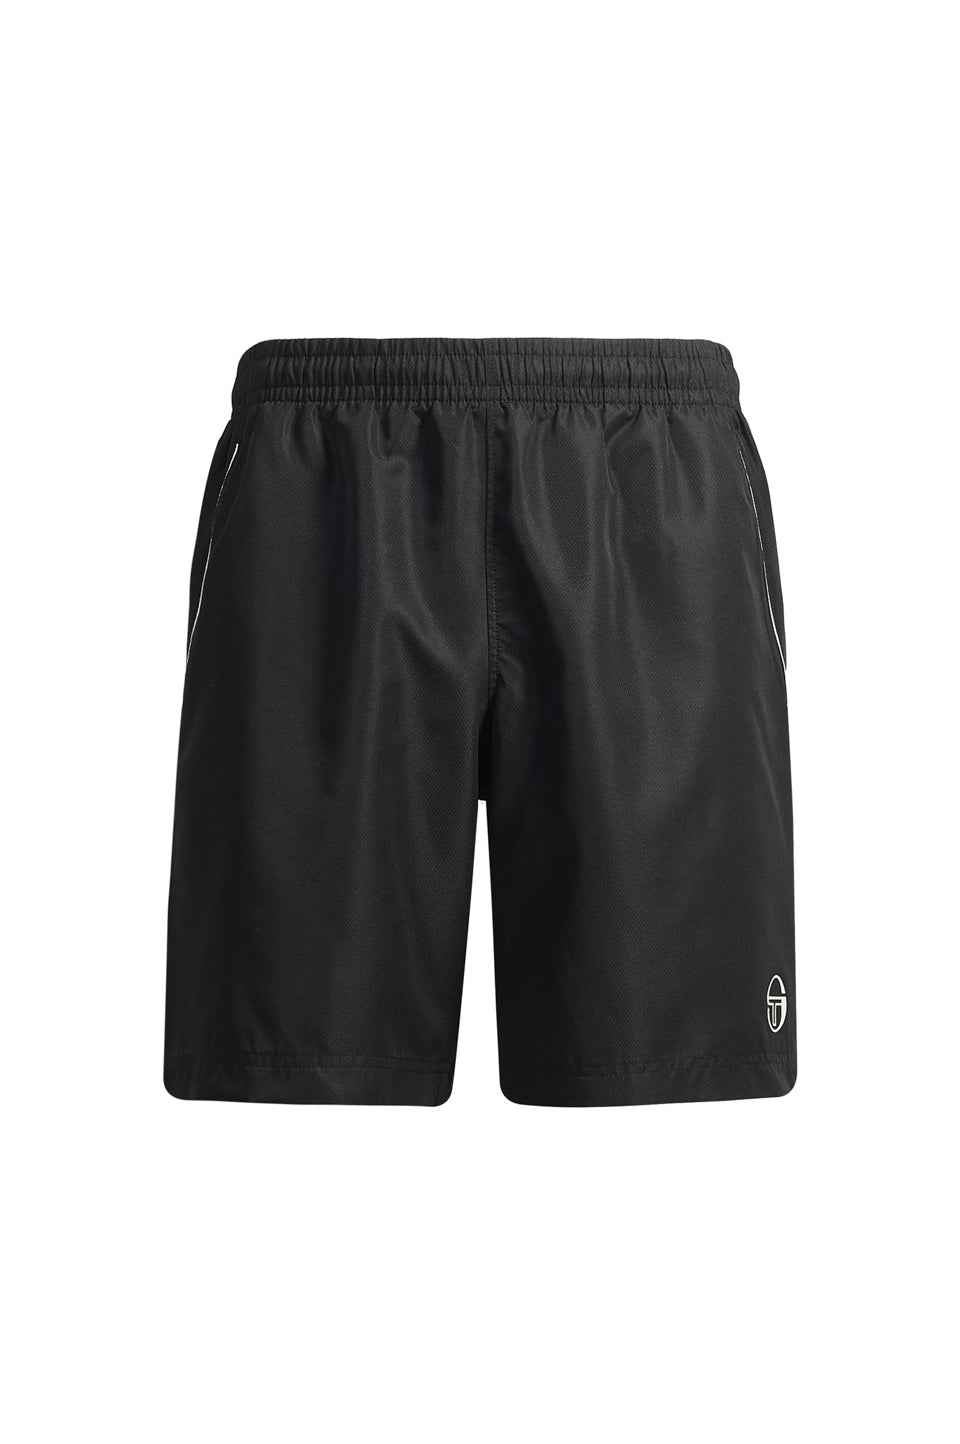 SERGIO TACCHINI ROB SHORTS MENS BLACK <br> 37383 13